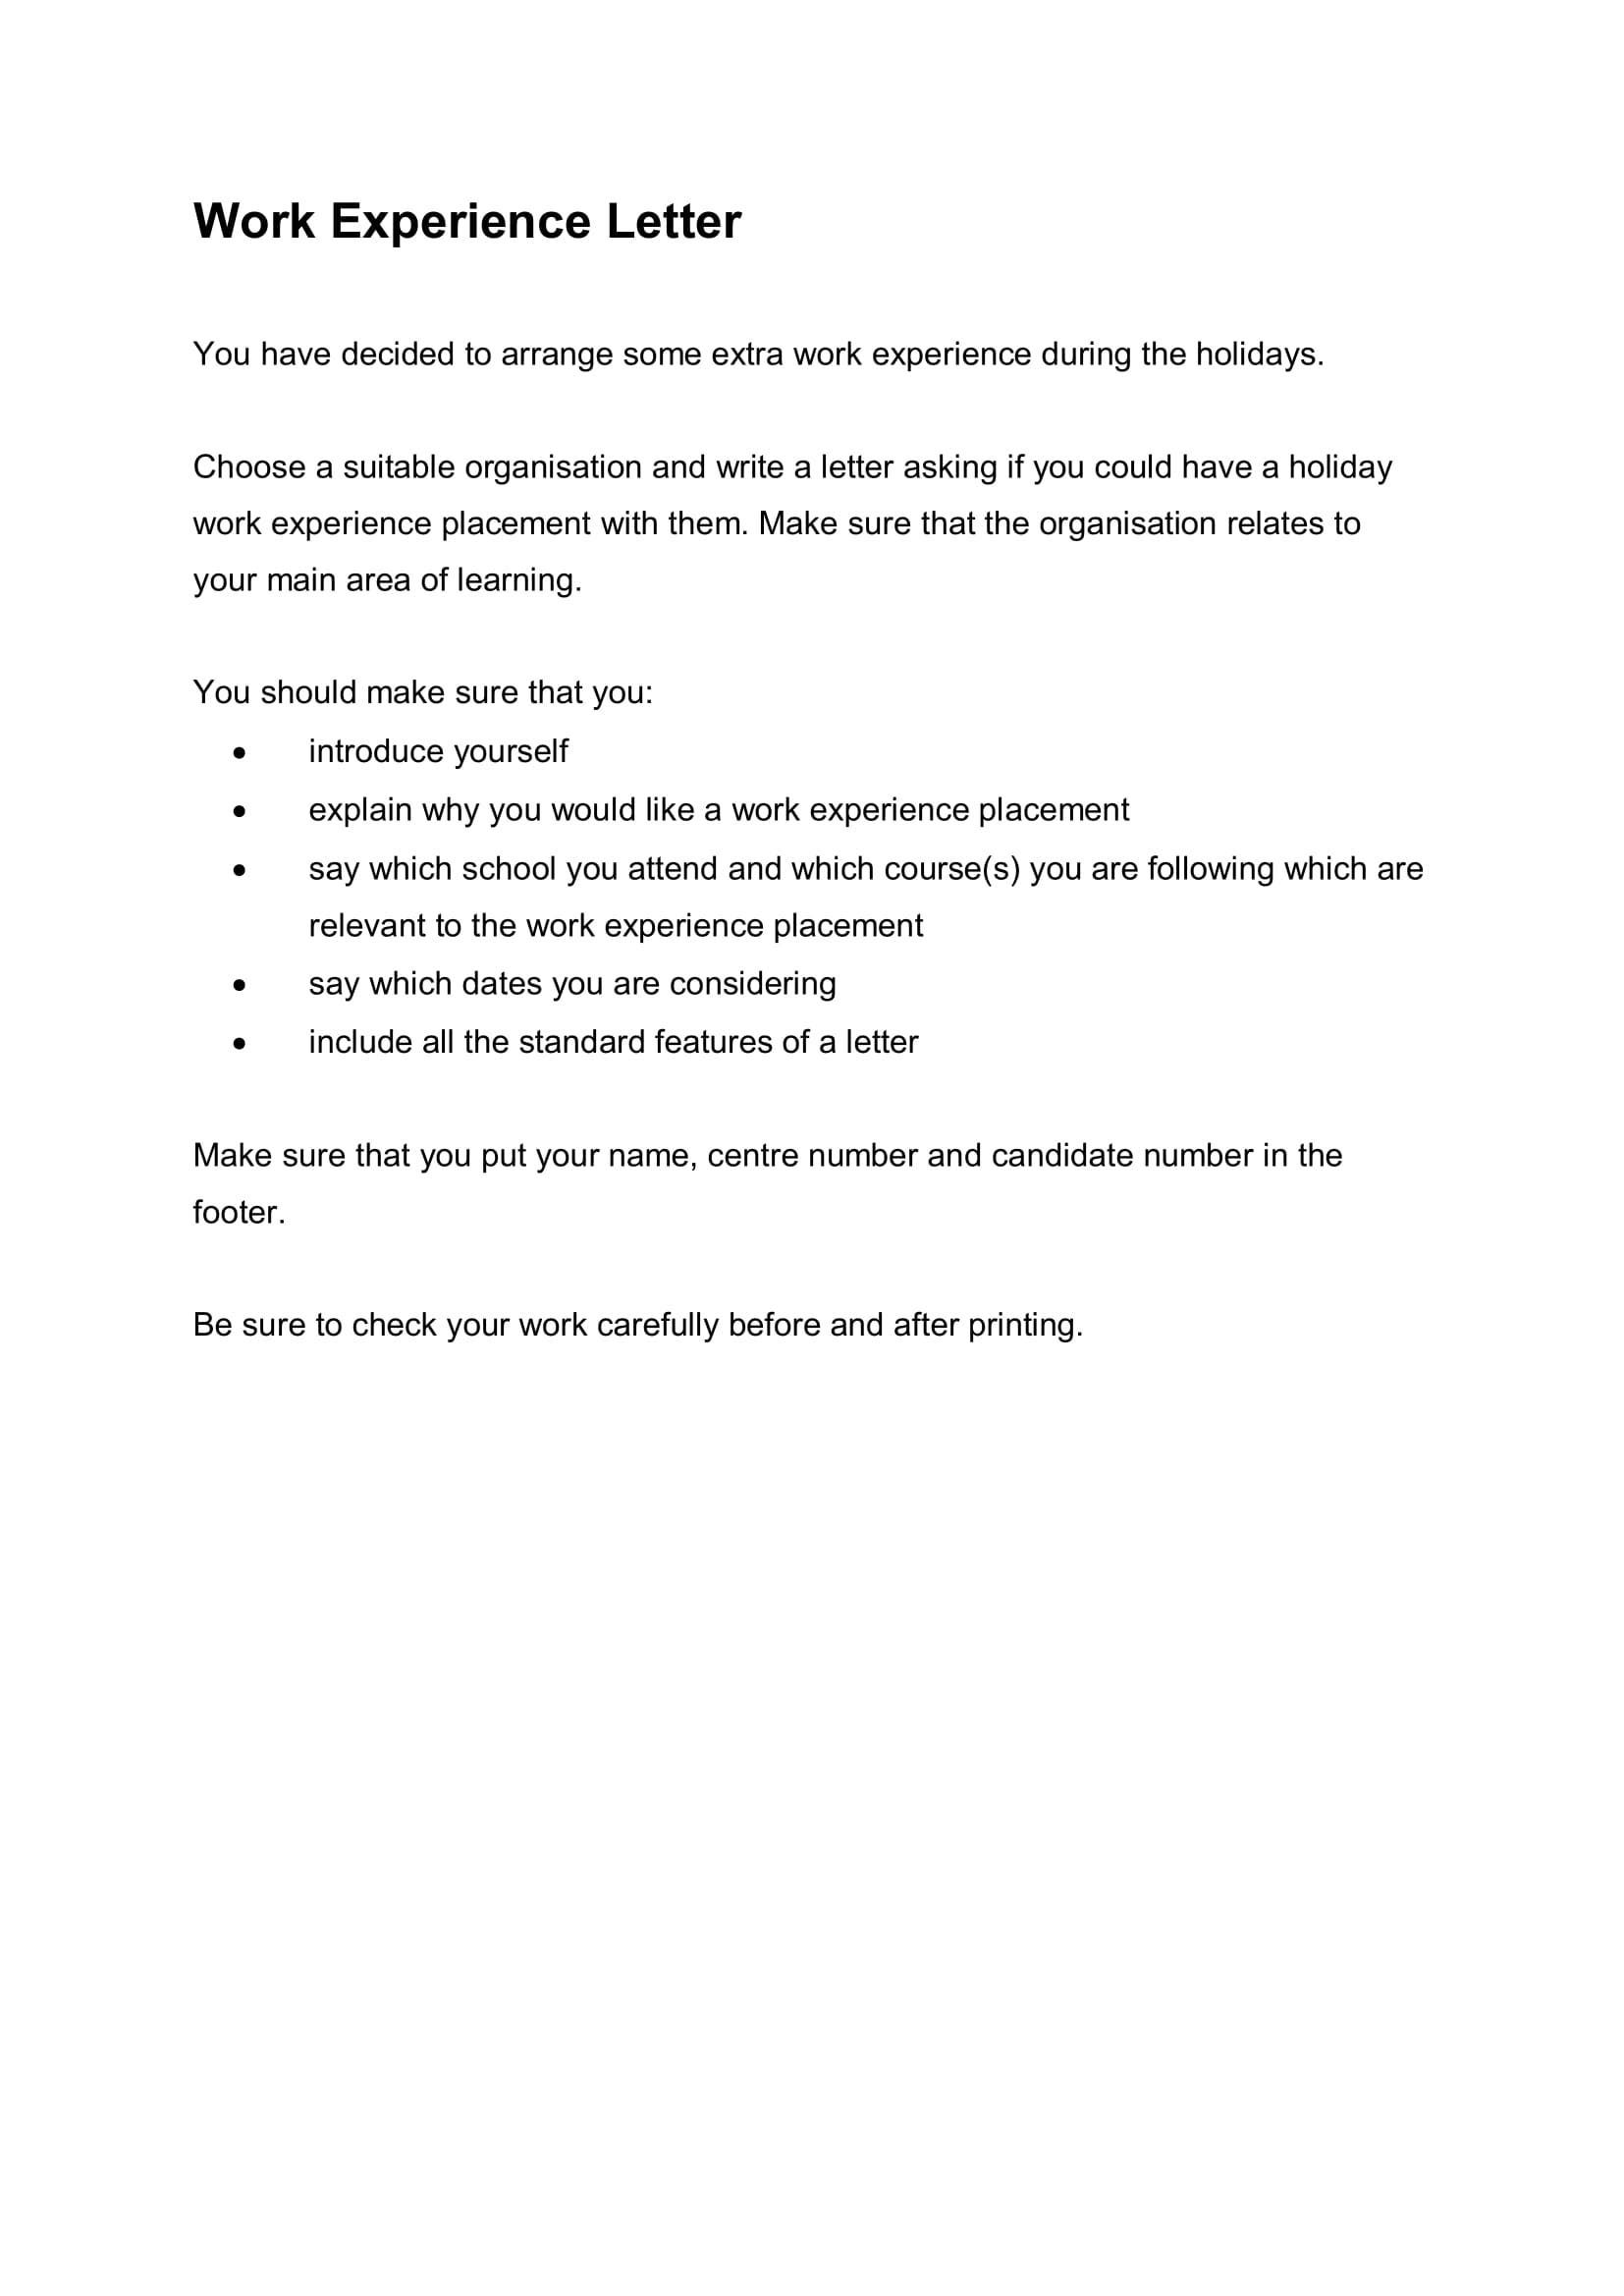 work experience letter sample 1